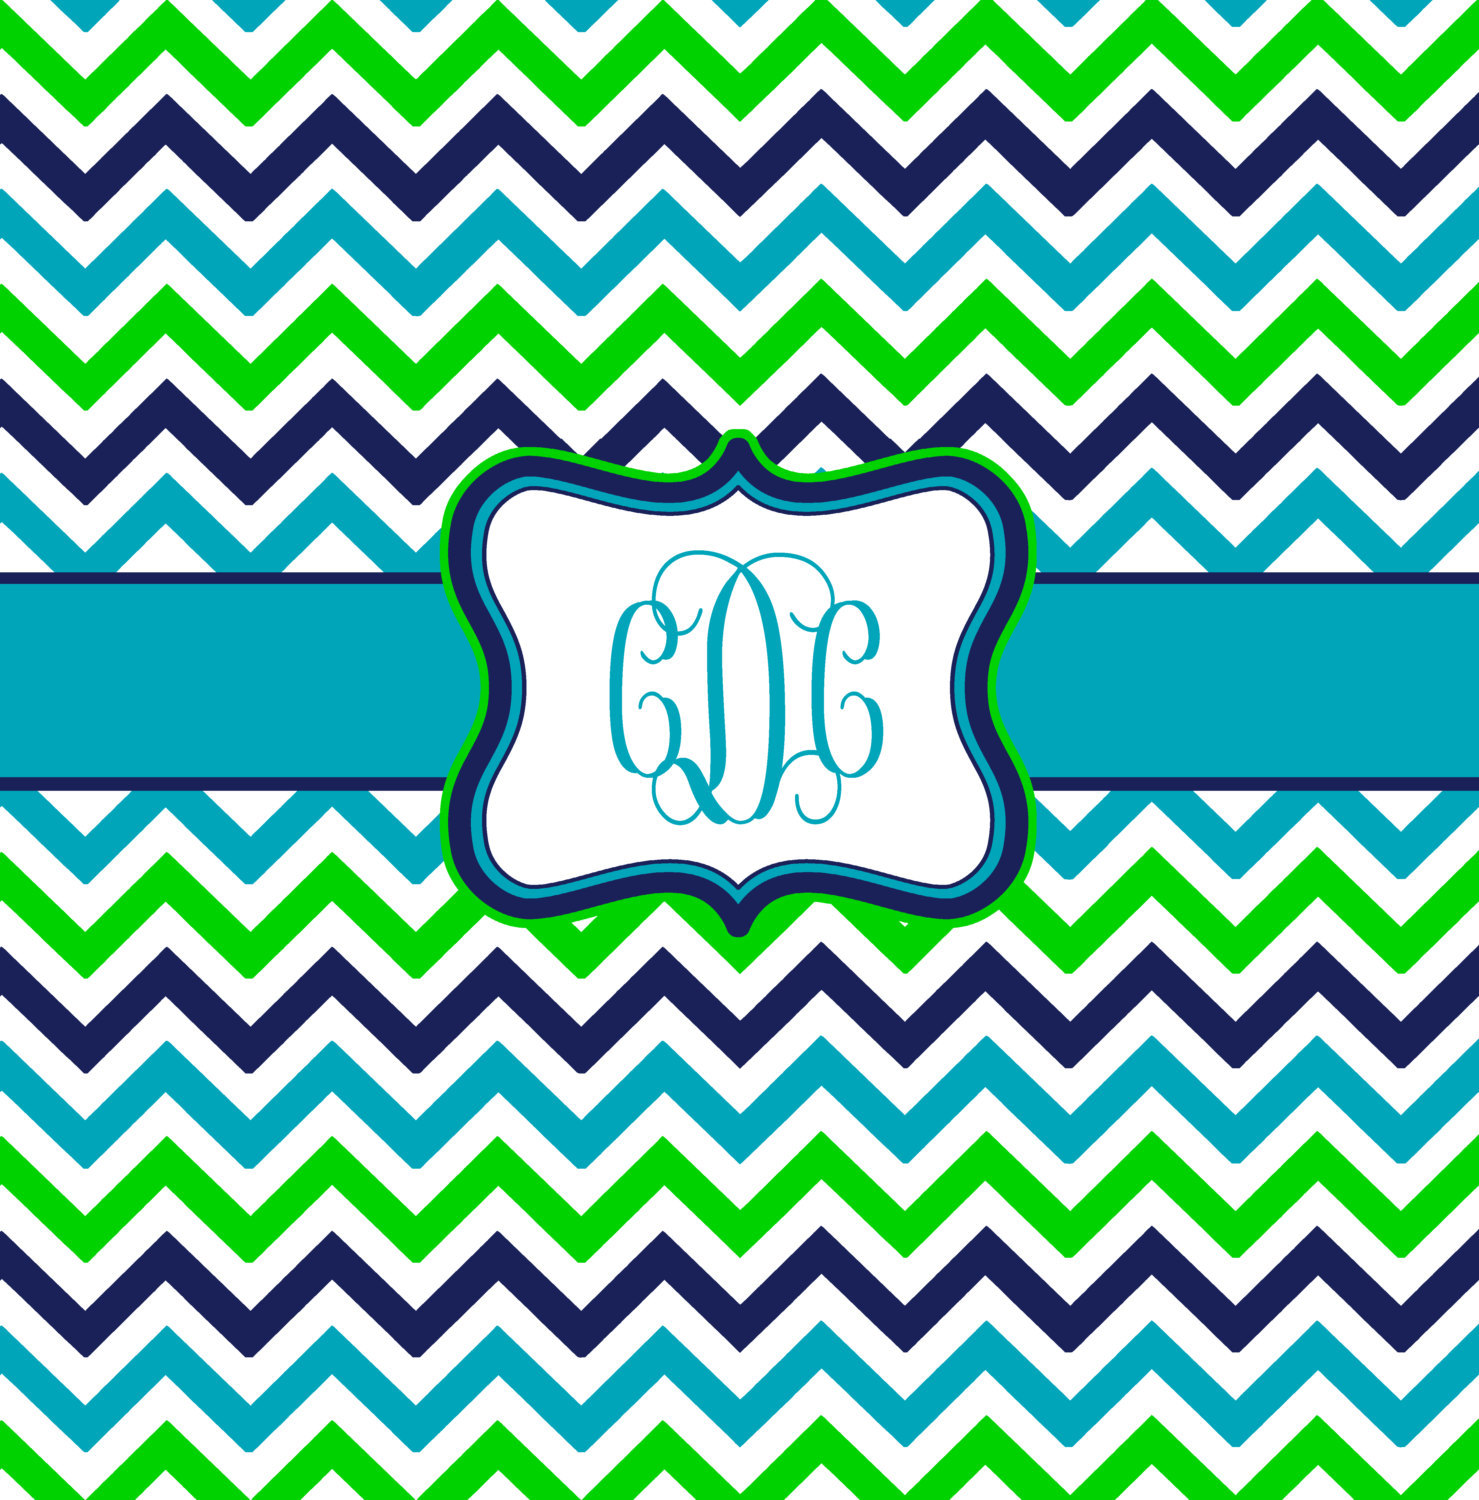 Shower Curtain - Multi Color Lime, Navy, Turquoise and White - Accent Any colors image 4